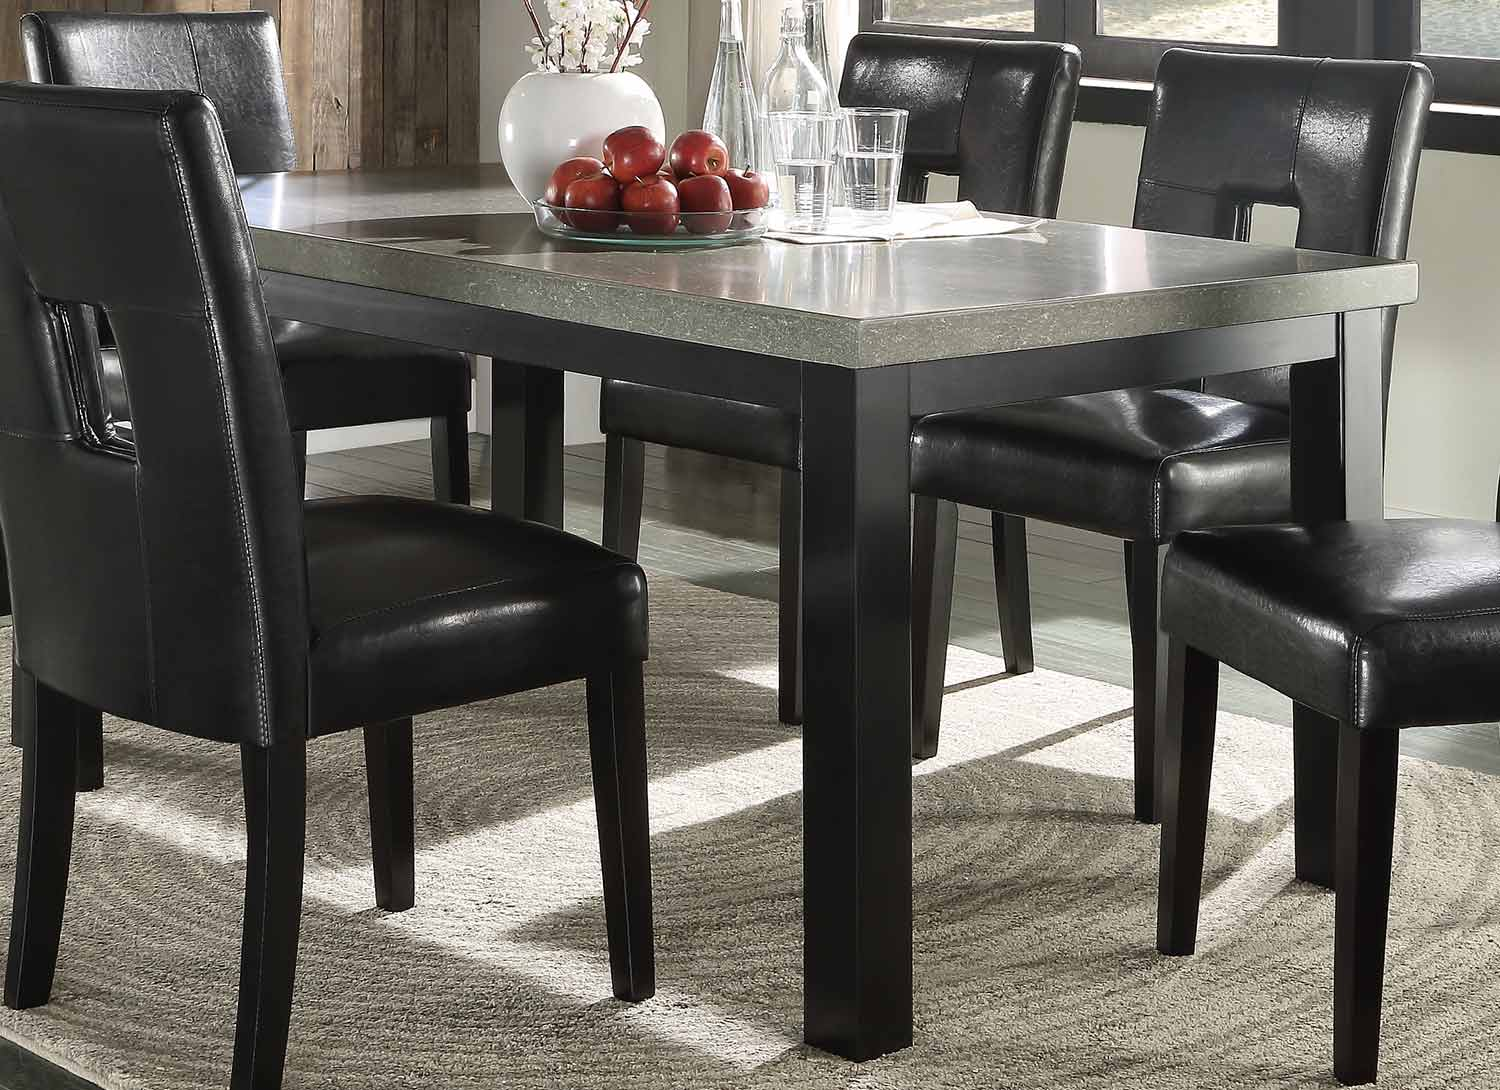 Homelegance Beliot Dining Table - Black